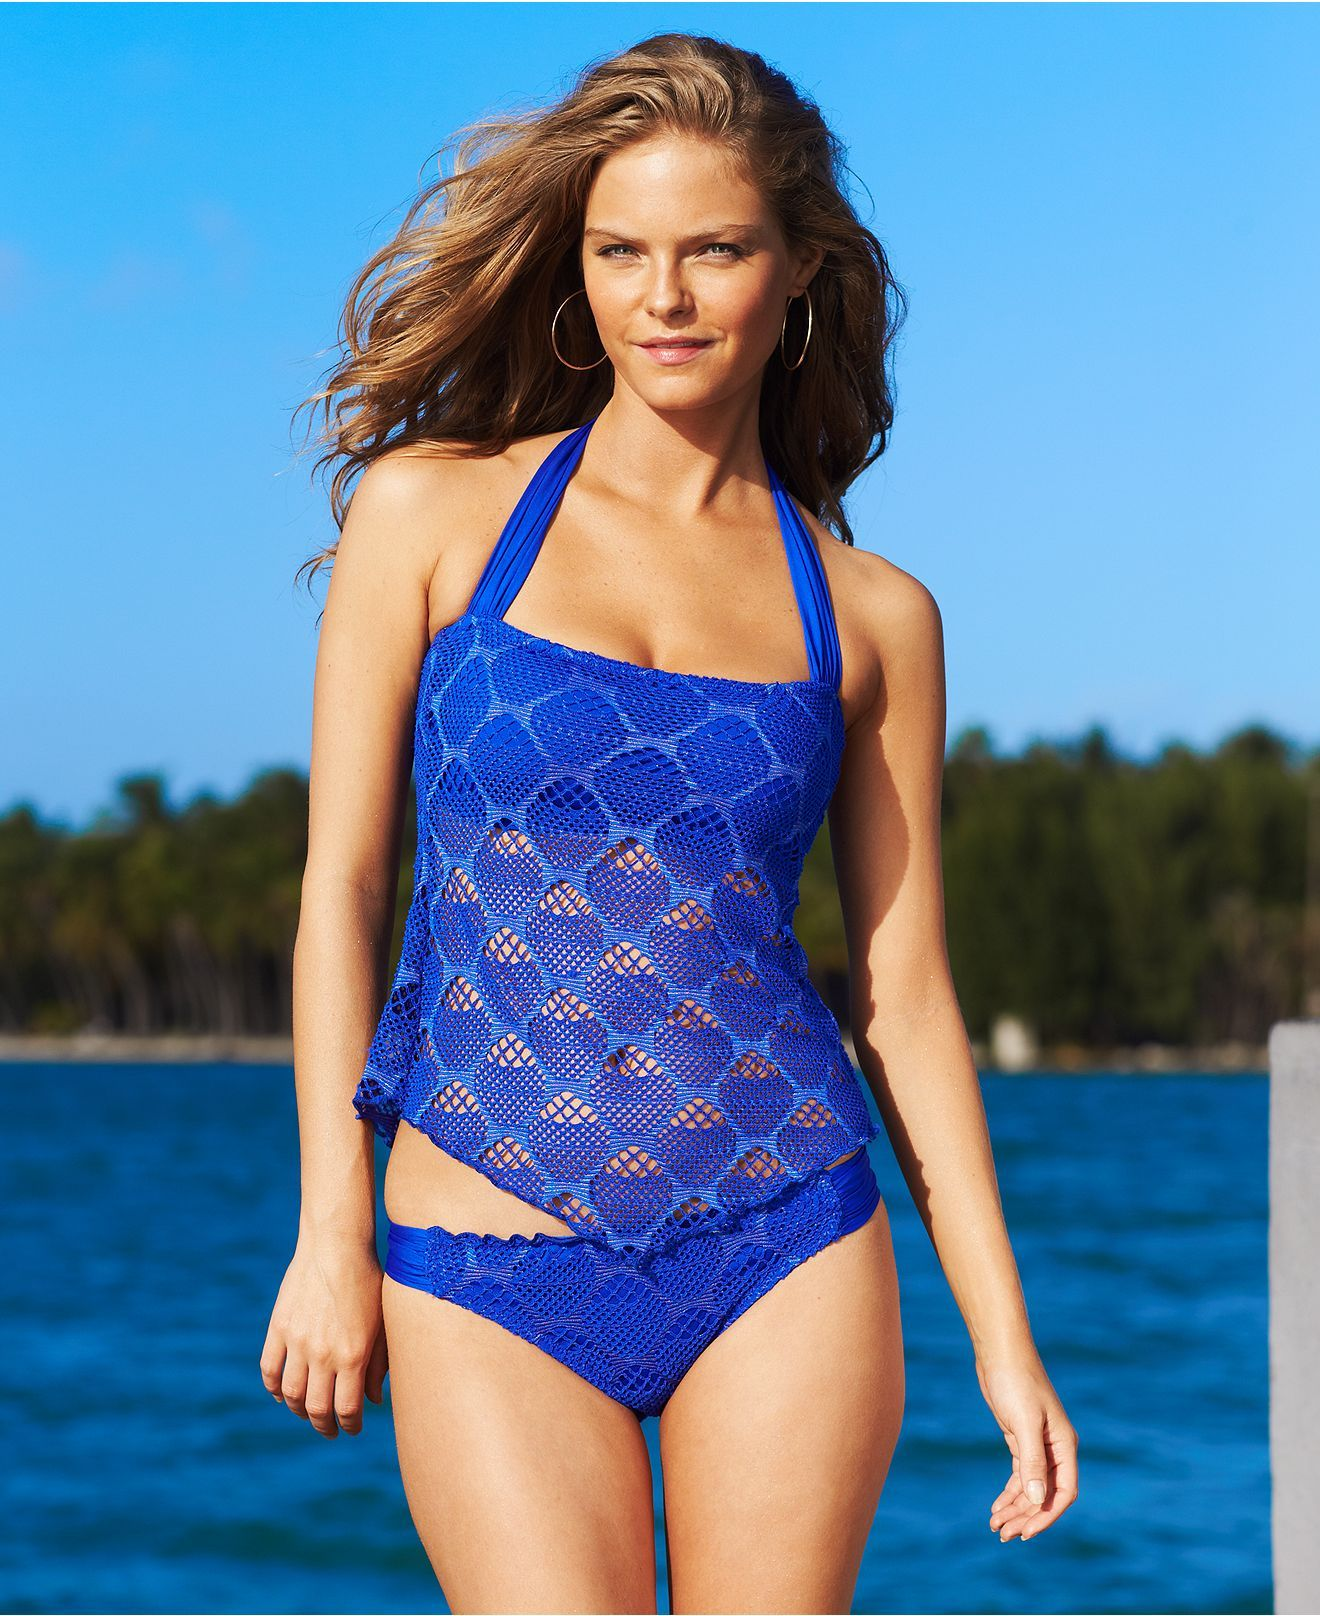 At Swimsuits For All, we know how important it is to have a tankini that's comfortable, flattering and fashionable. With our styles, that's exactly what you'll get. Tankinis offer the look of a one piece with the functionality of a two piece.